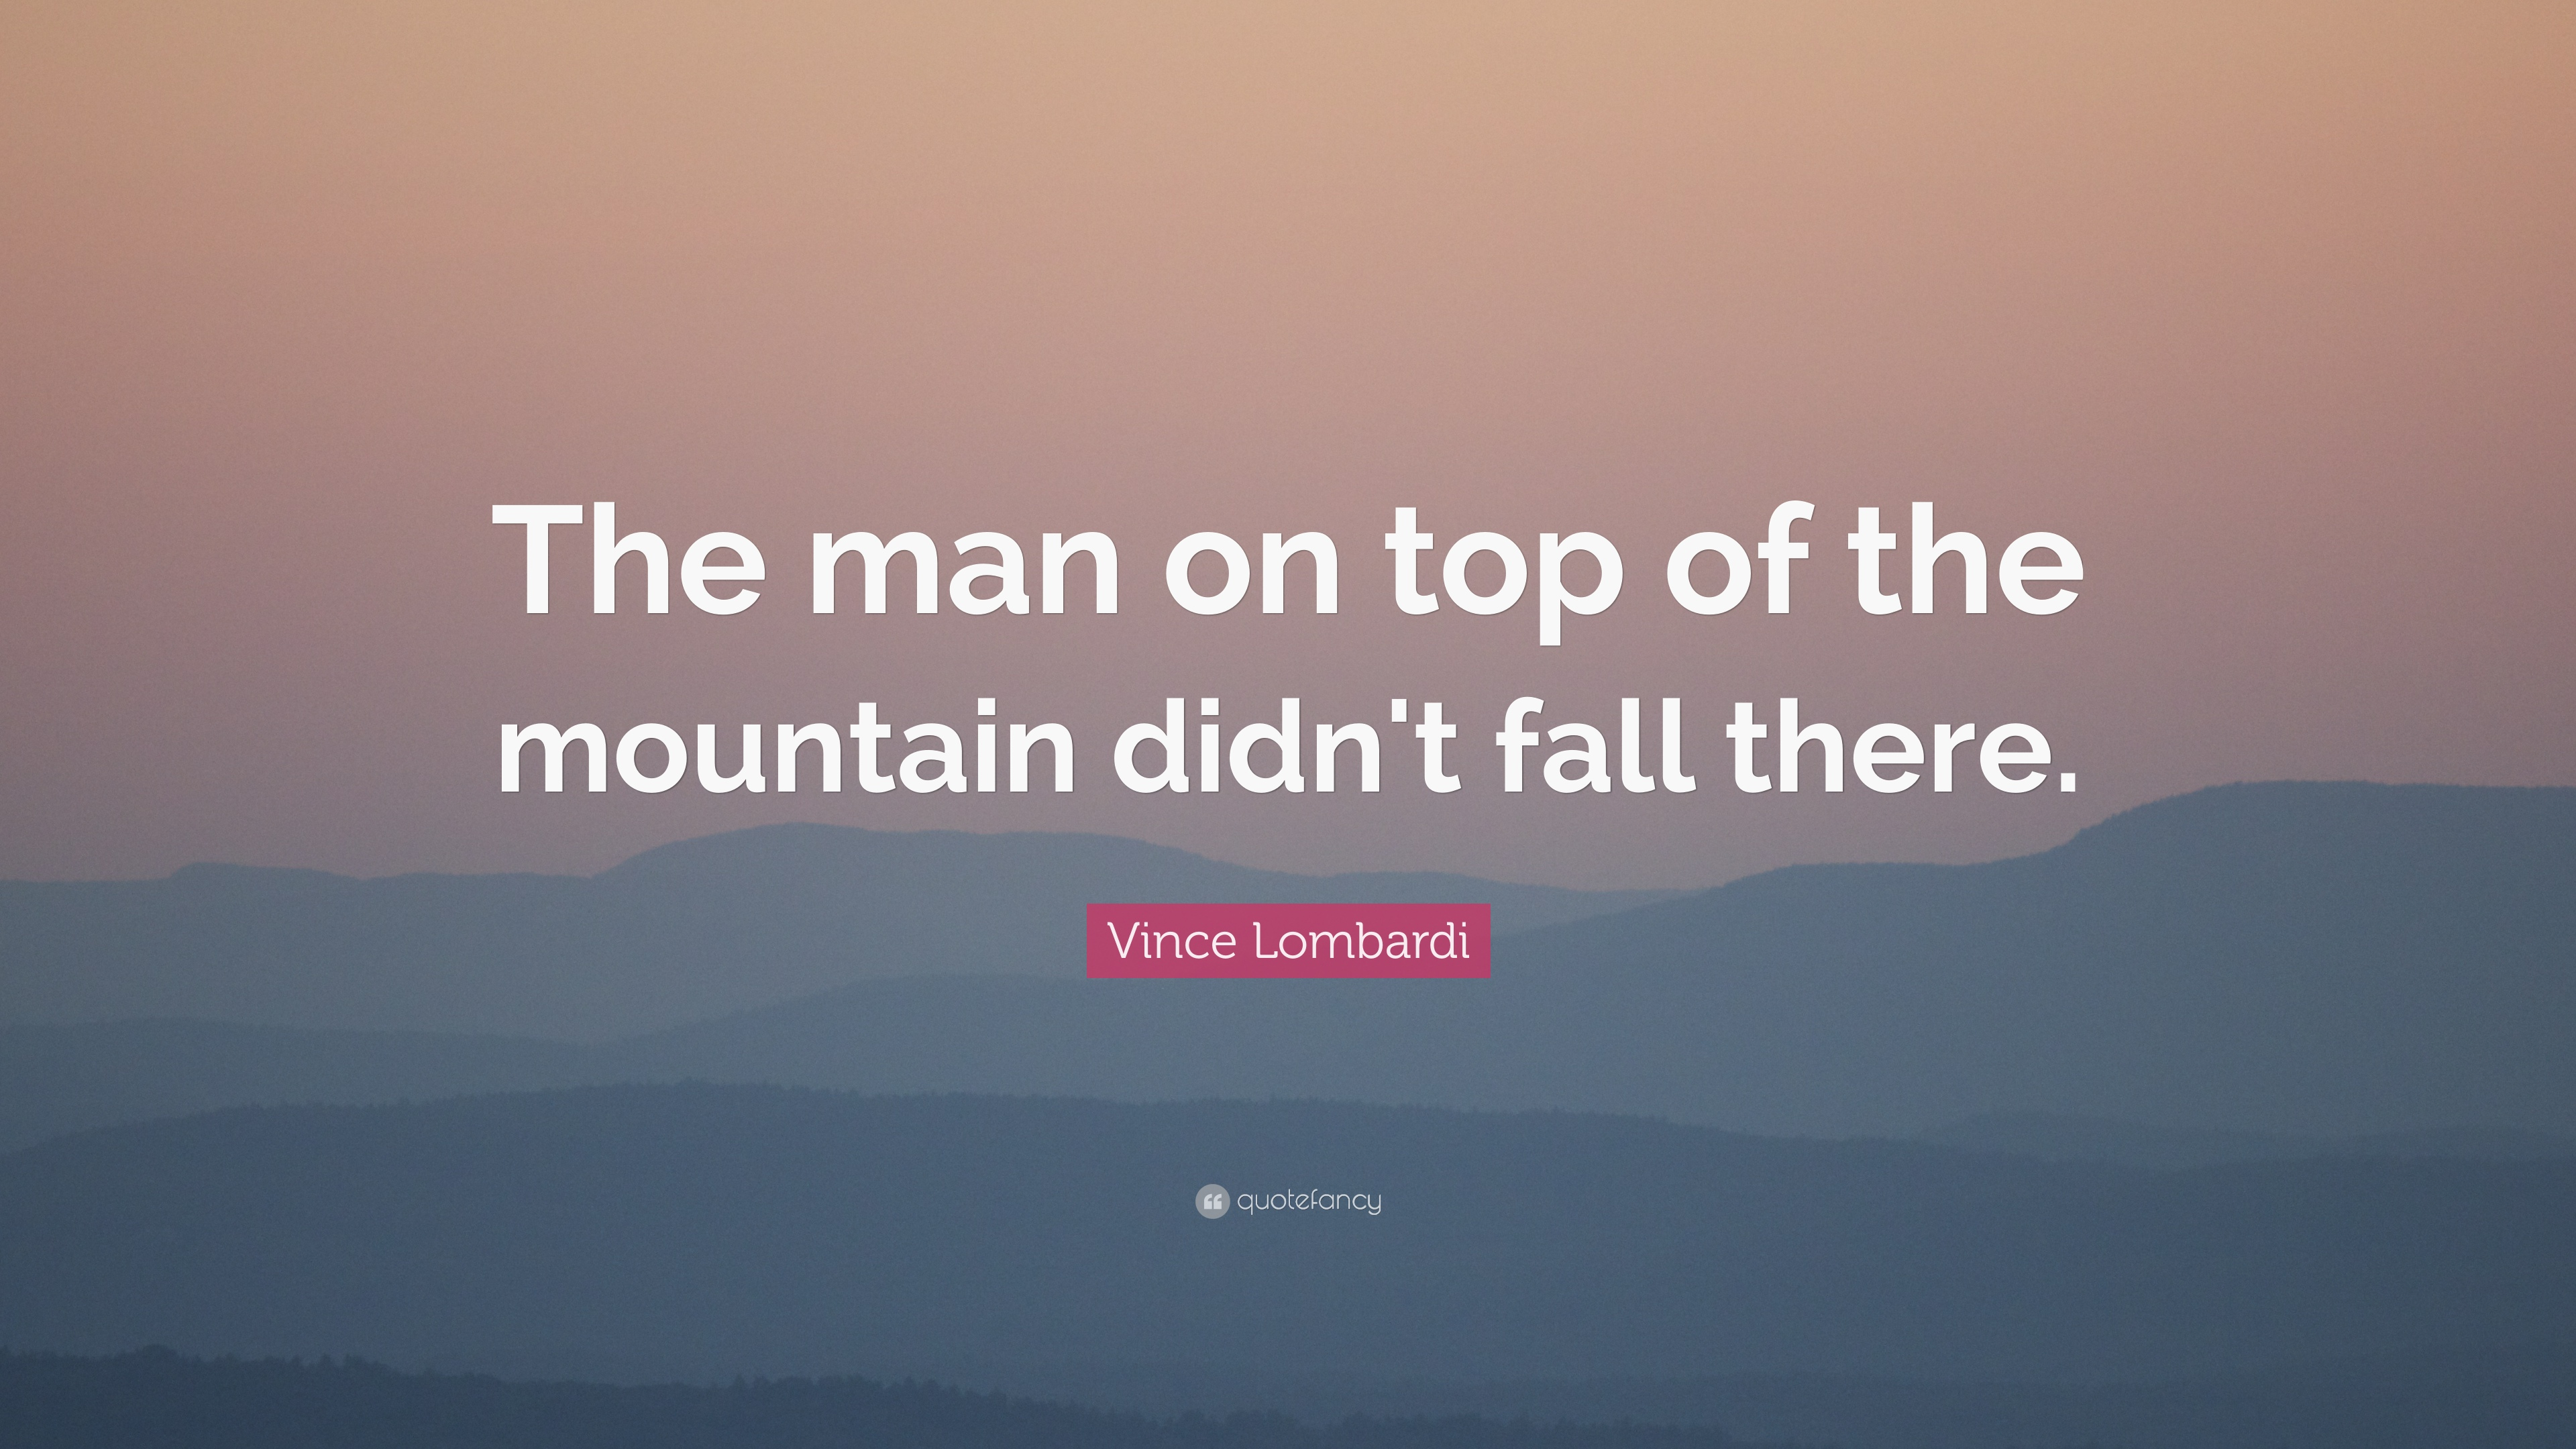 Fall Photo Wallpaper Vince Lombardi Quote The Man On Top Of The Mountain Didn